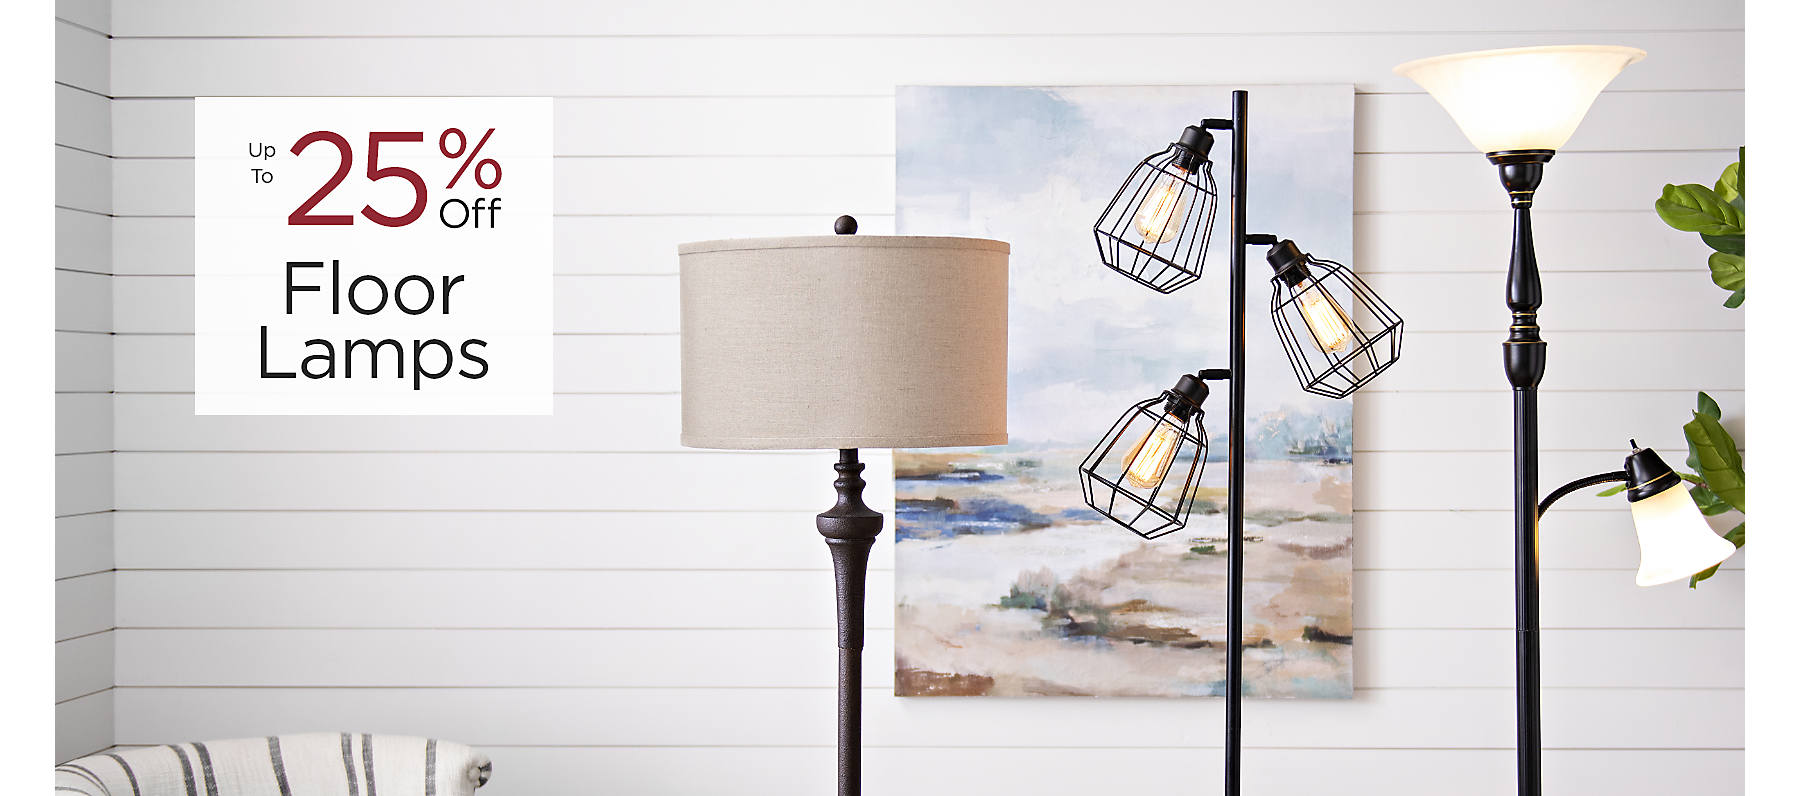 Floor Lamps Up to 25% Off